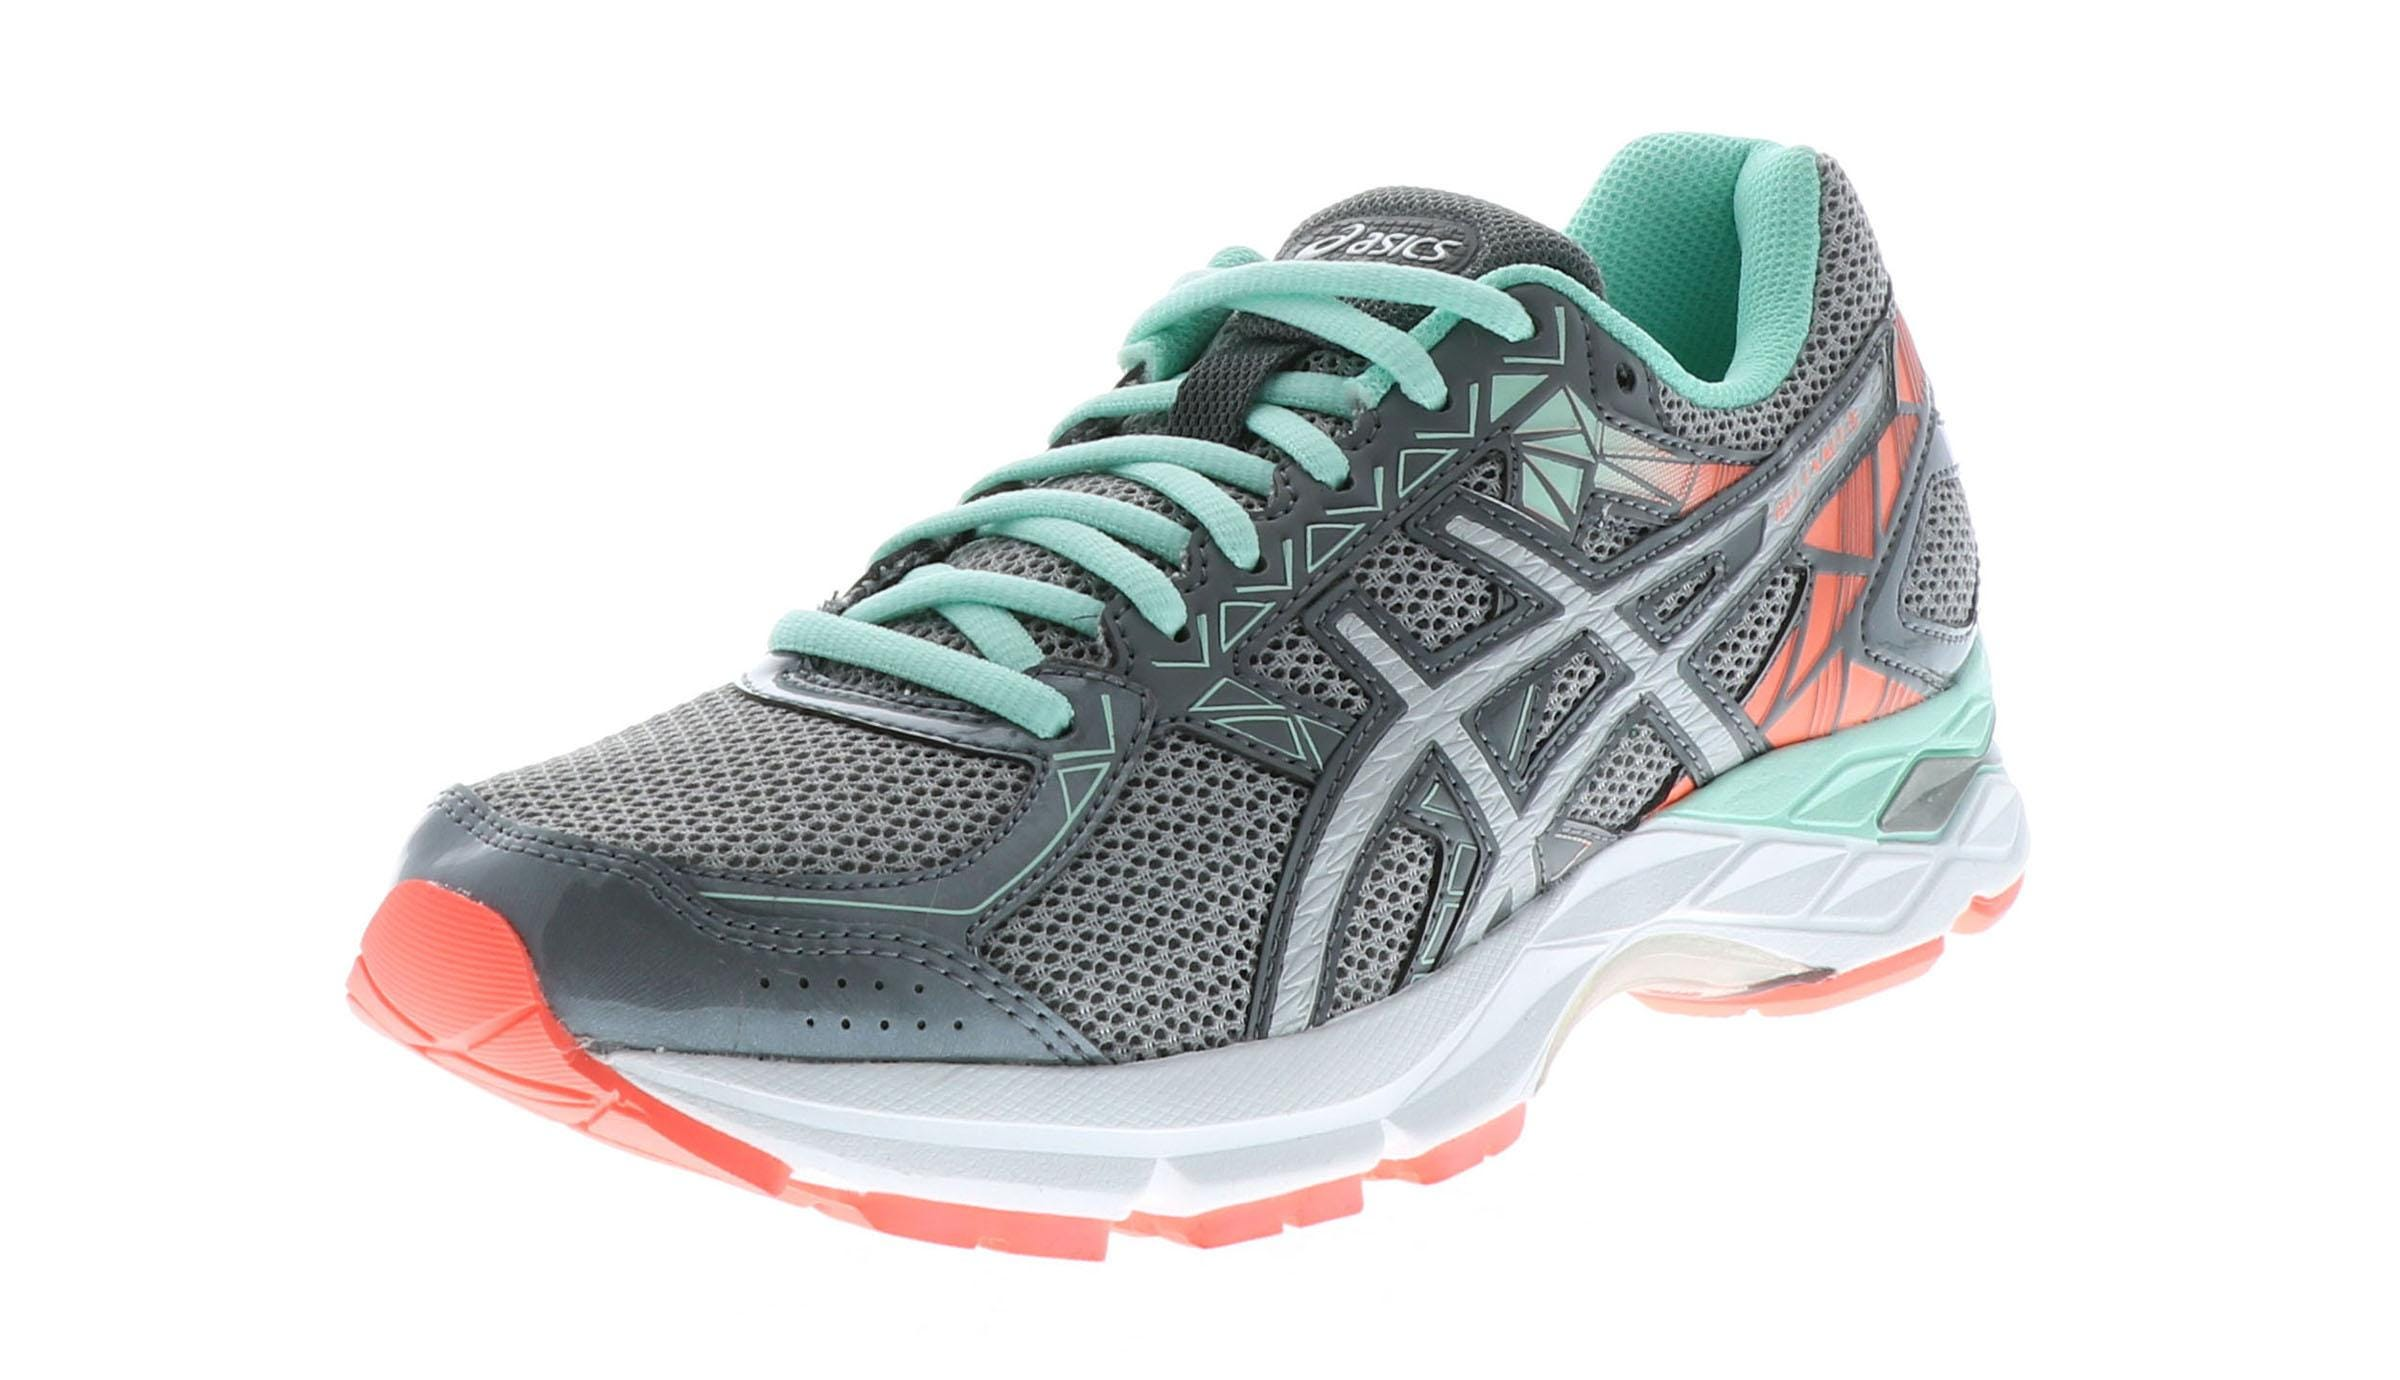 573bca519ba ASICS Gel Exalt 3 Running Shoes|Shoe Sensation